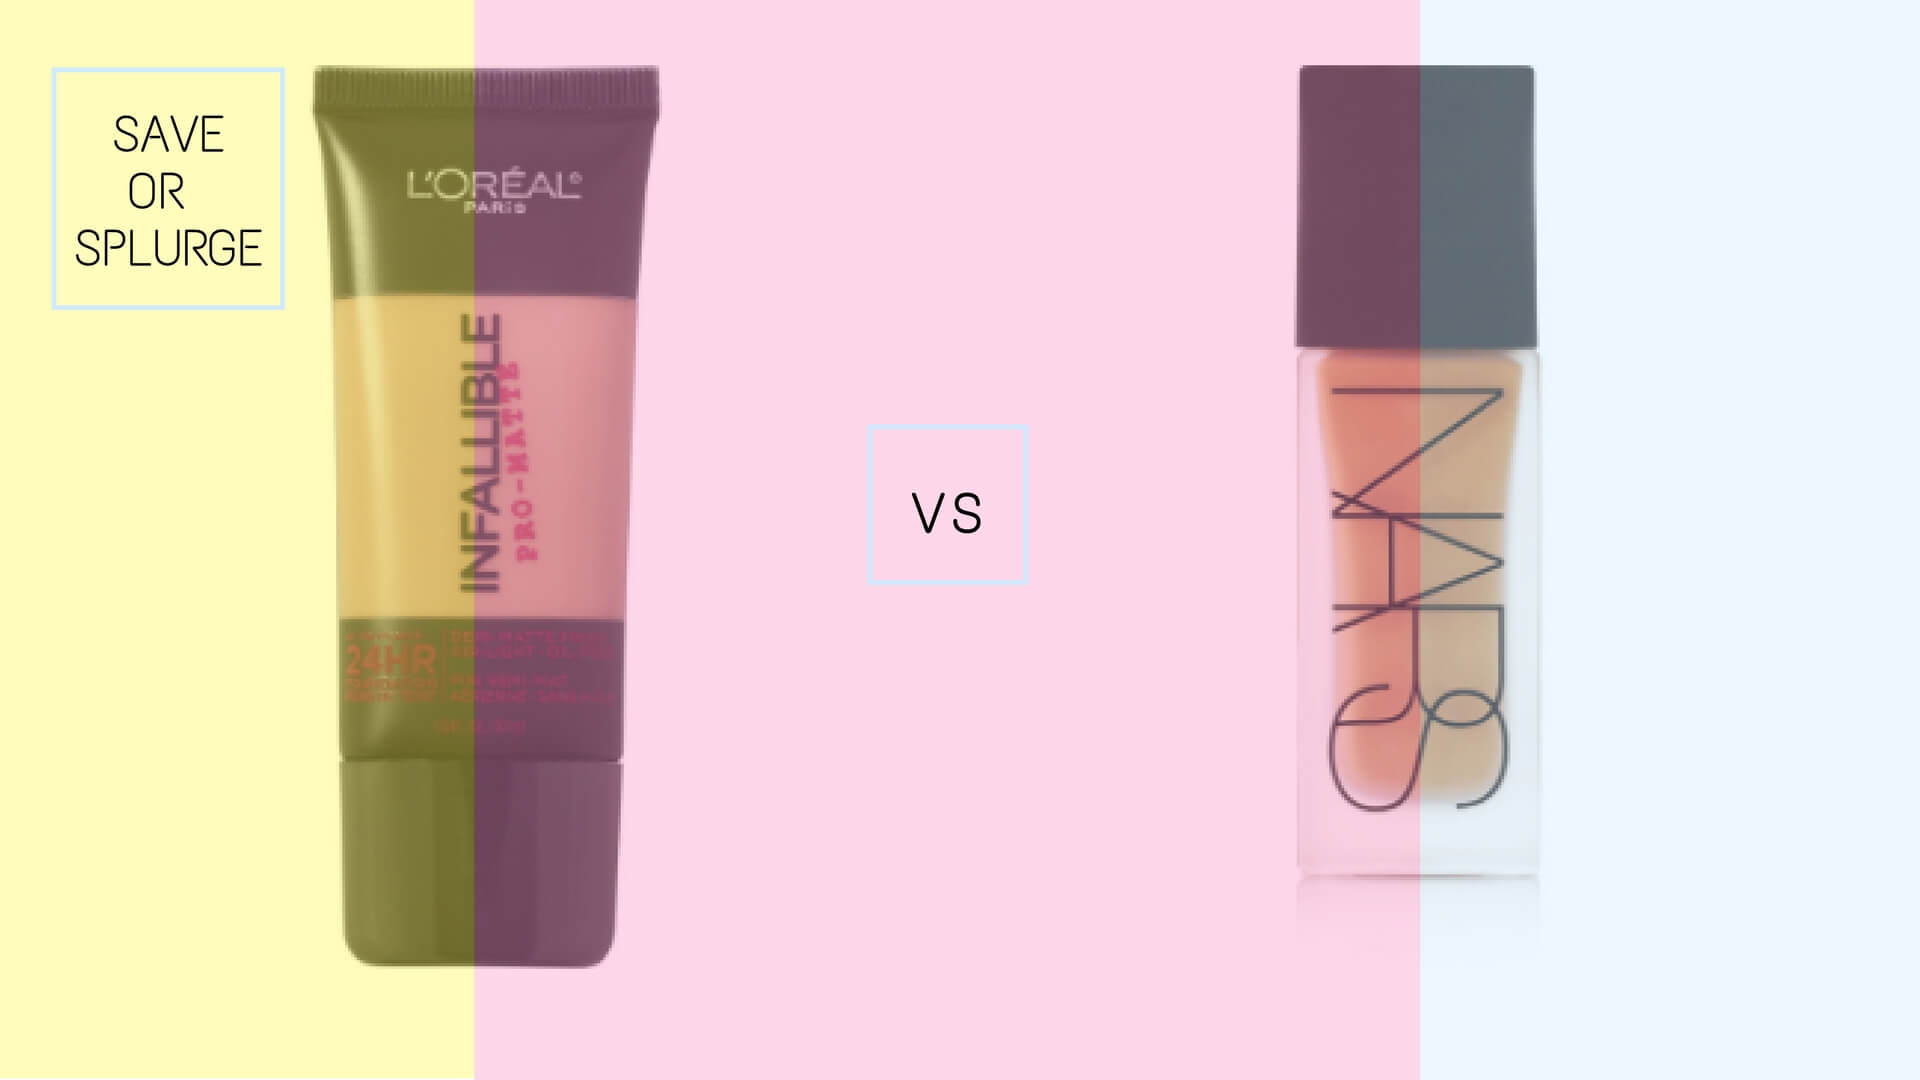 L'Oréal Infallible Pro-Matte 24HR Foundation vs Nars All Day Luminous Weightless Foundation | Best Drugstore Foundations Dupes Under 10 Dollars | Chiclypoised | Chiclypoised.com